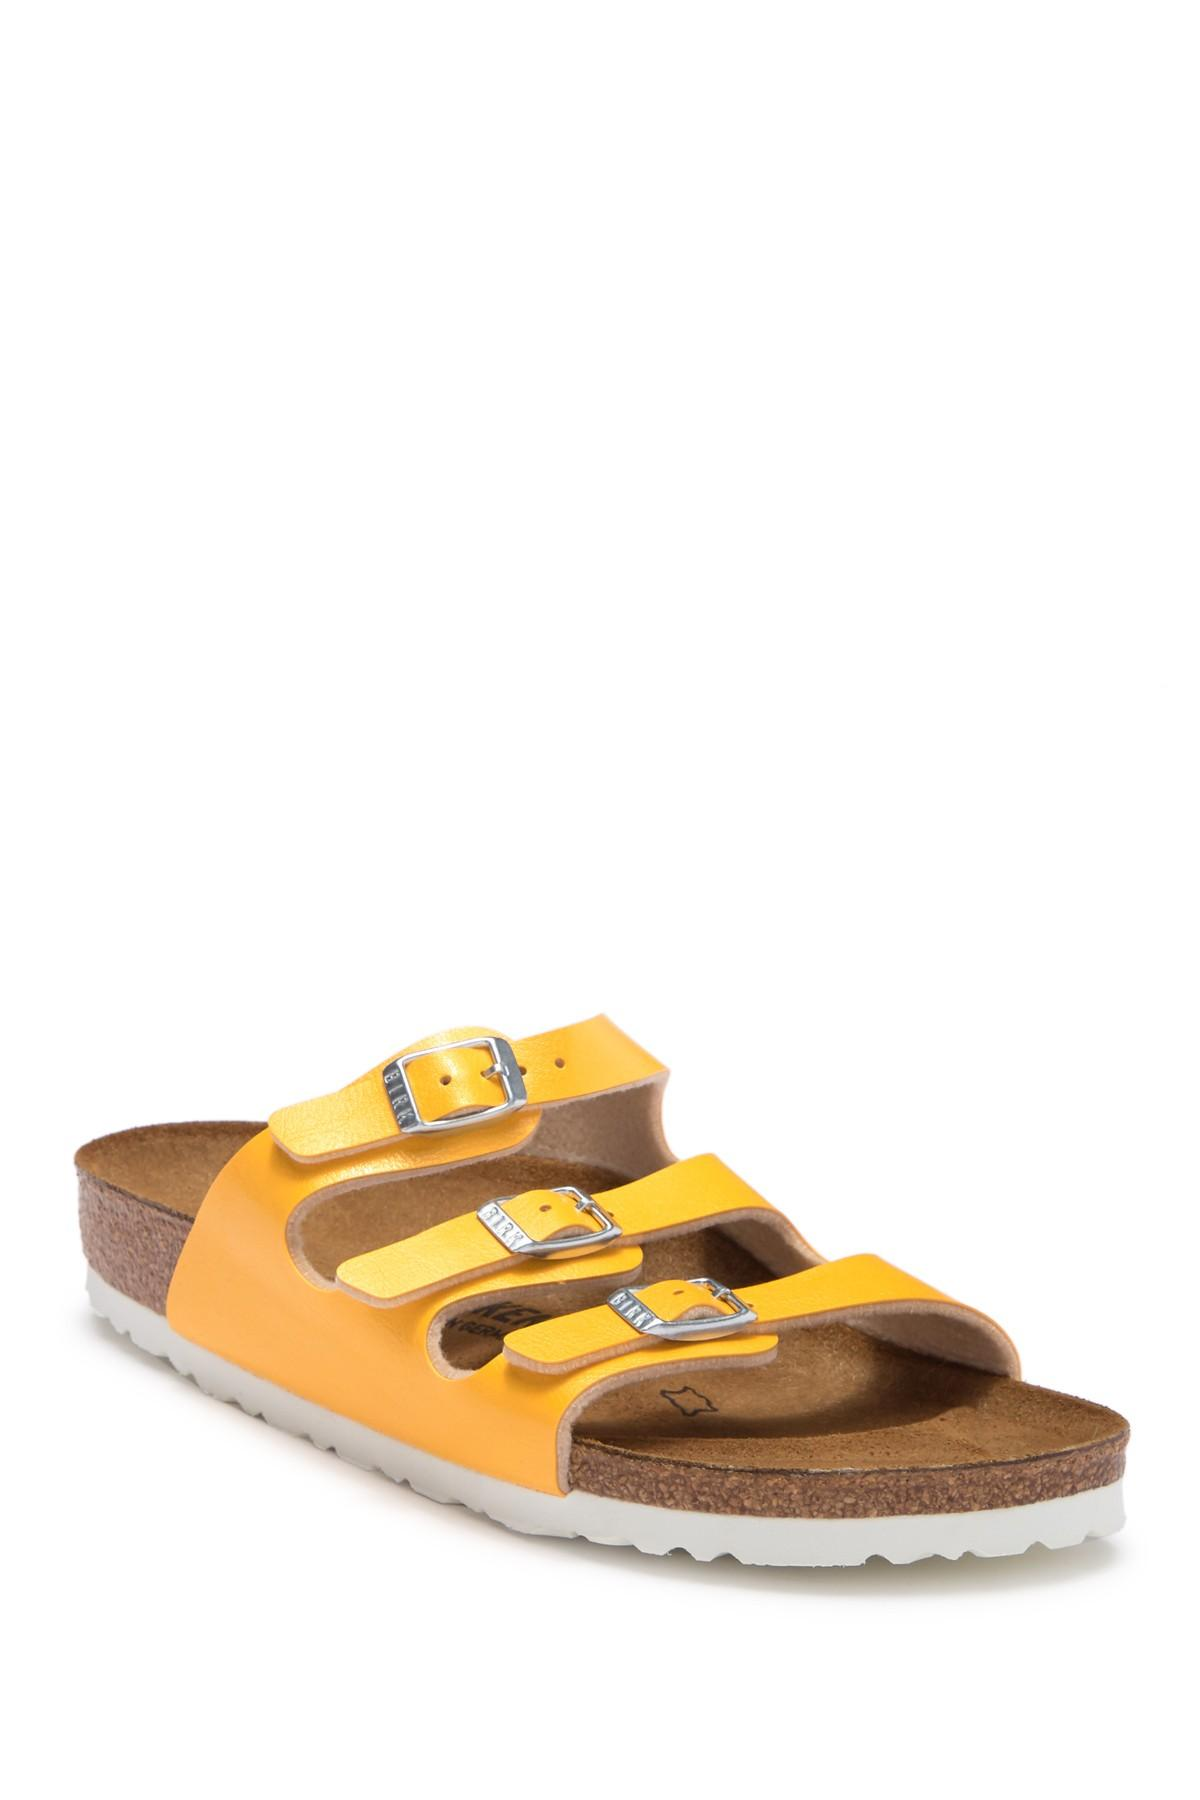 Lyst - Birkenstock Florida Soft Footbed Sandal - Discontinued in Yellow 8f057f0396c5